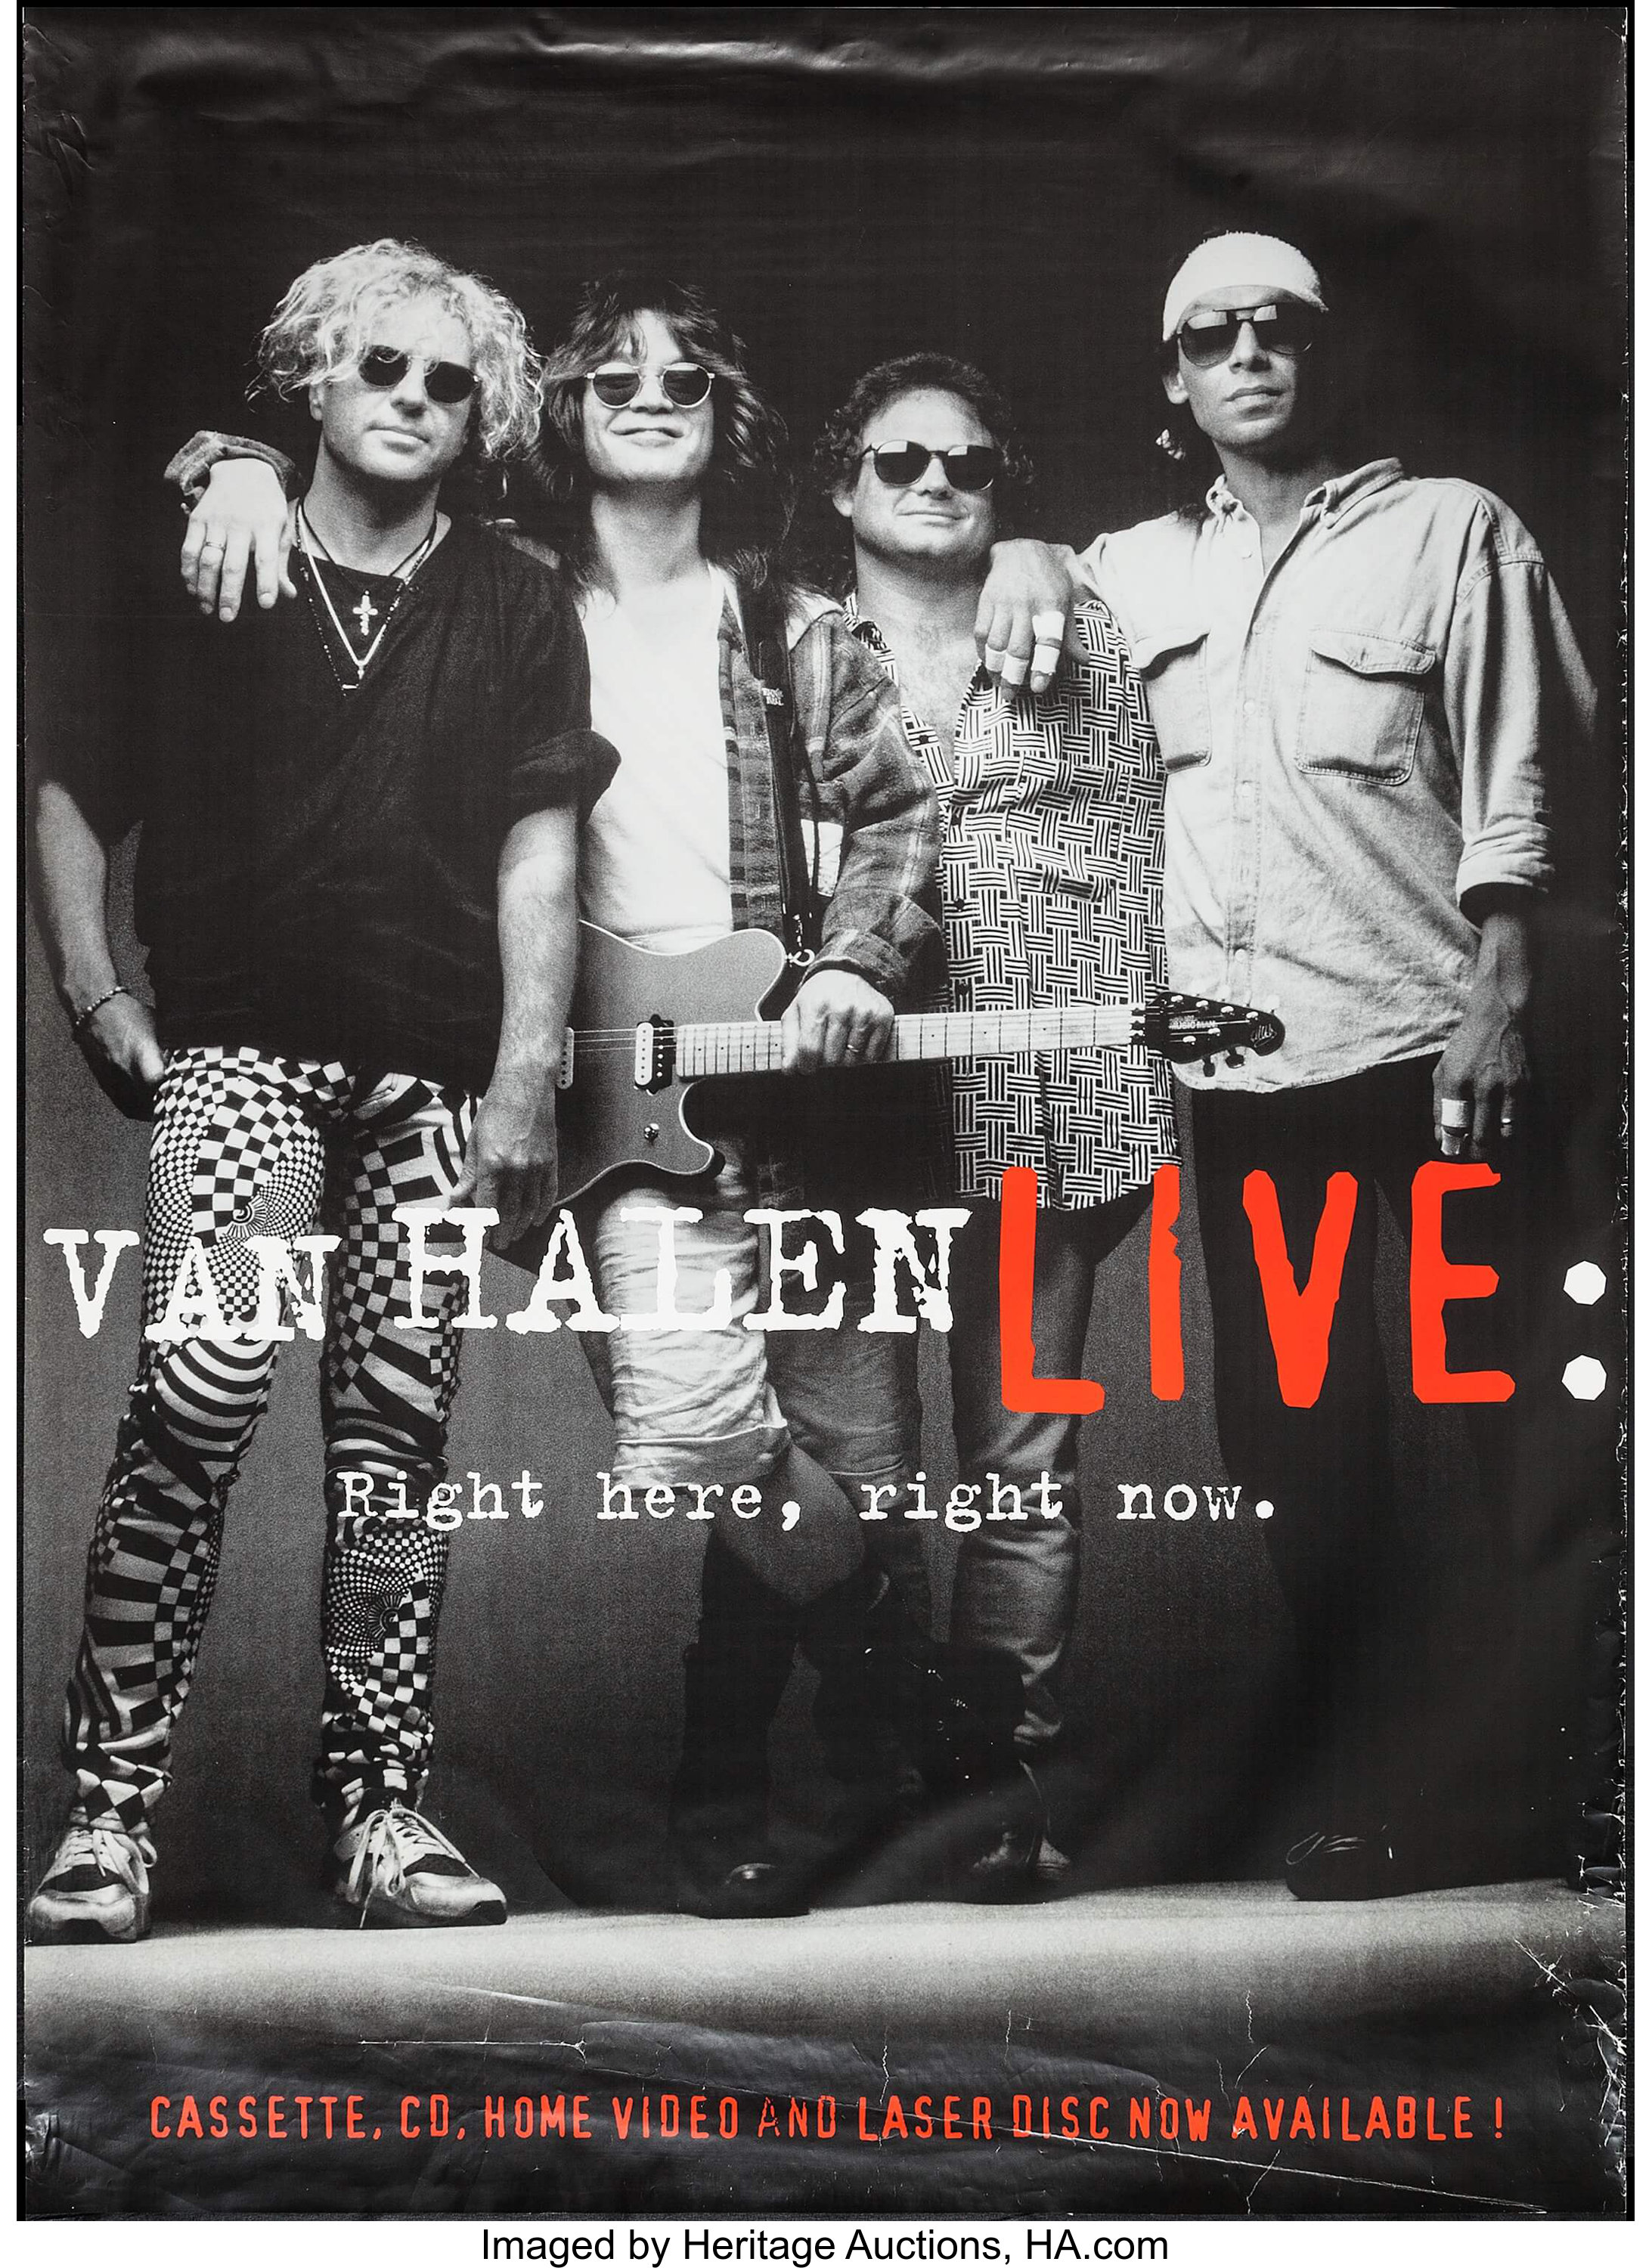 Van Halen Live Right Here Right Now Warner Brothers 1993 Lot 53292 Heritage Auctions Give him/her some advice on how to do it. heritage auctions